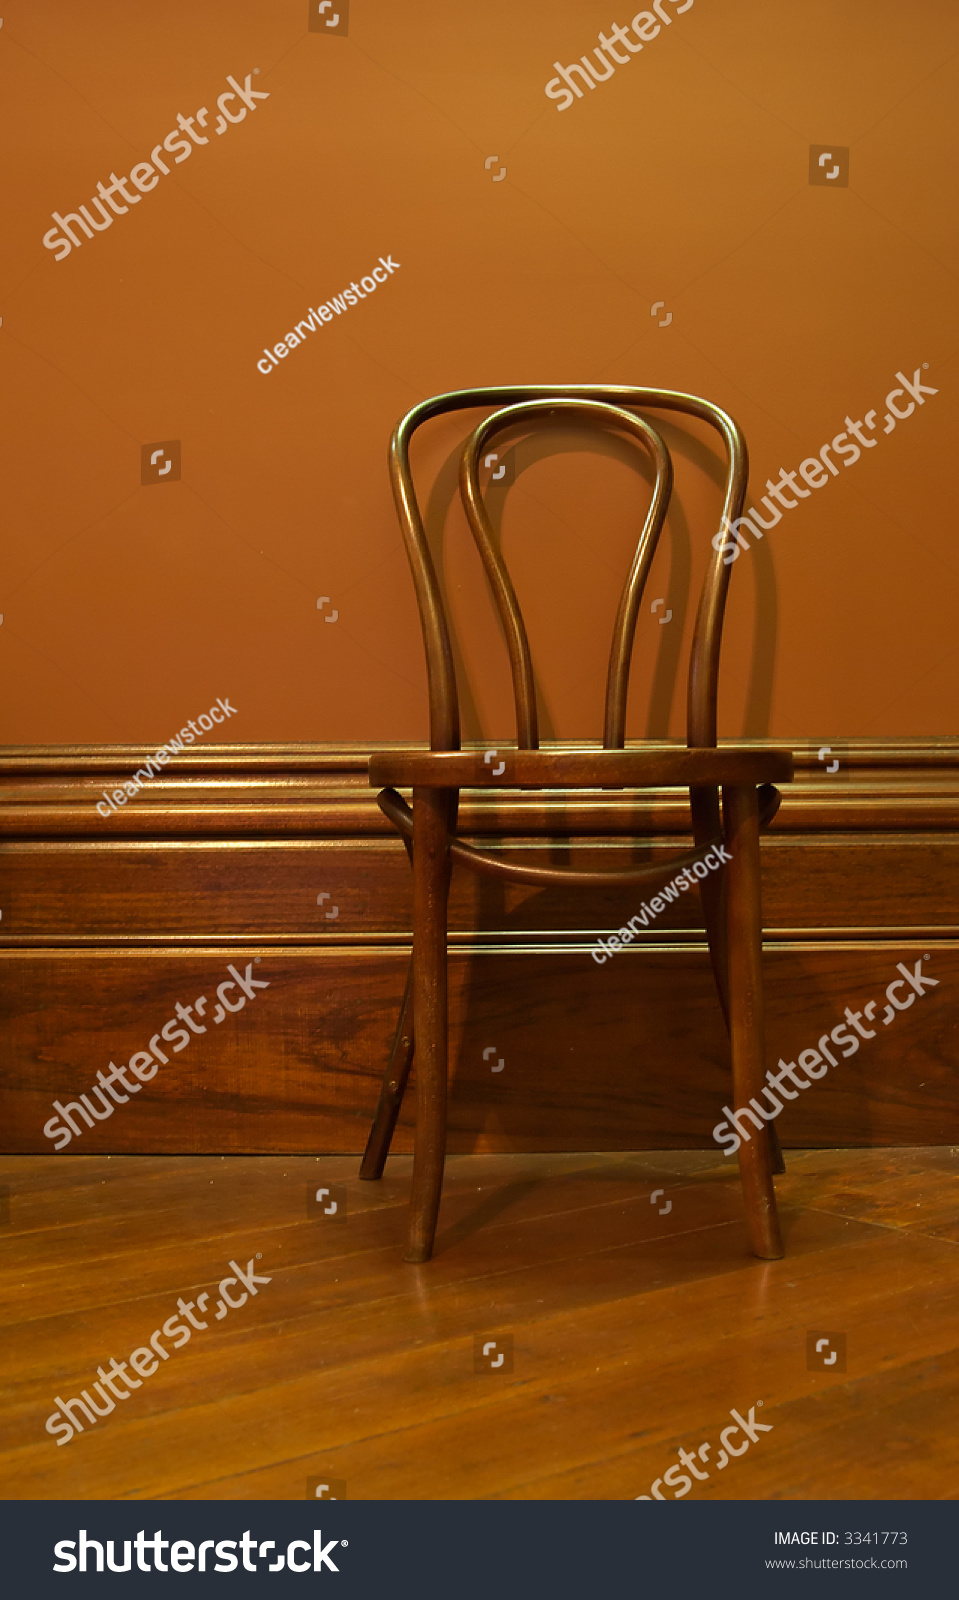 a brown wooden chair against the wall in a brown waiting room stock photo 3341773 shutterstock. Black Bedroom Furniture Sets. Home Design Ideas